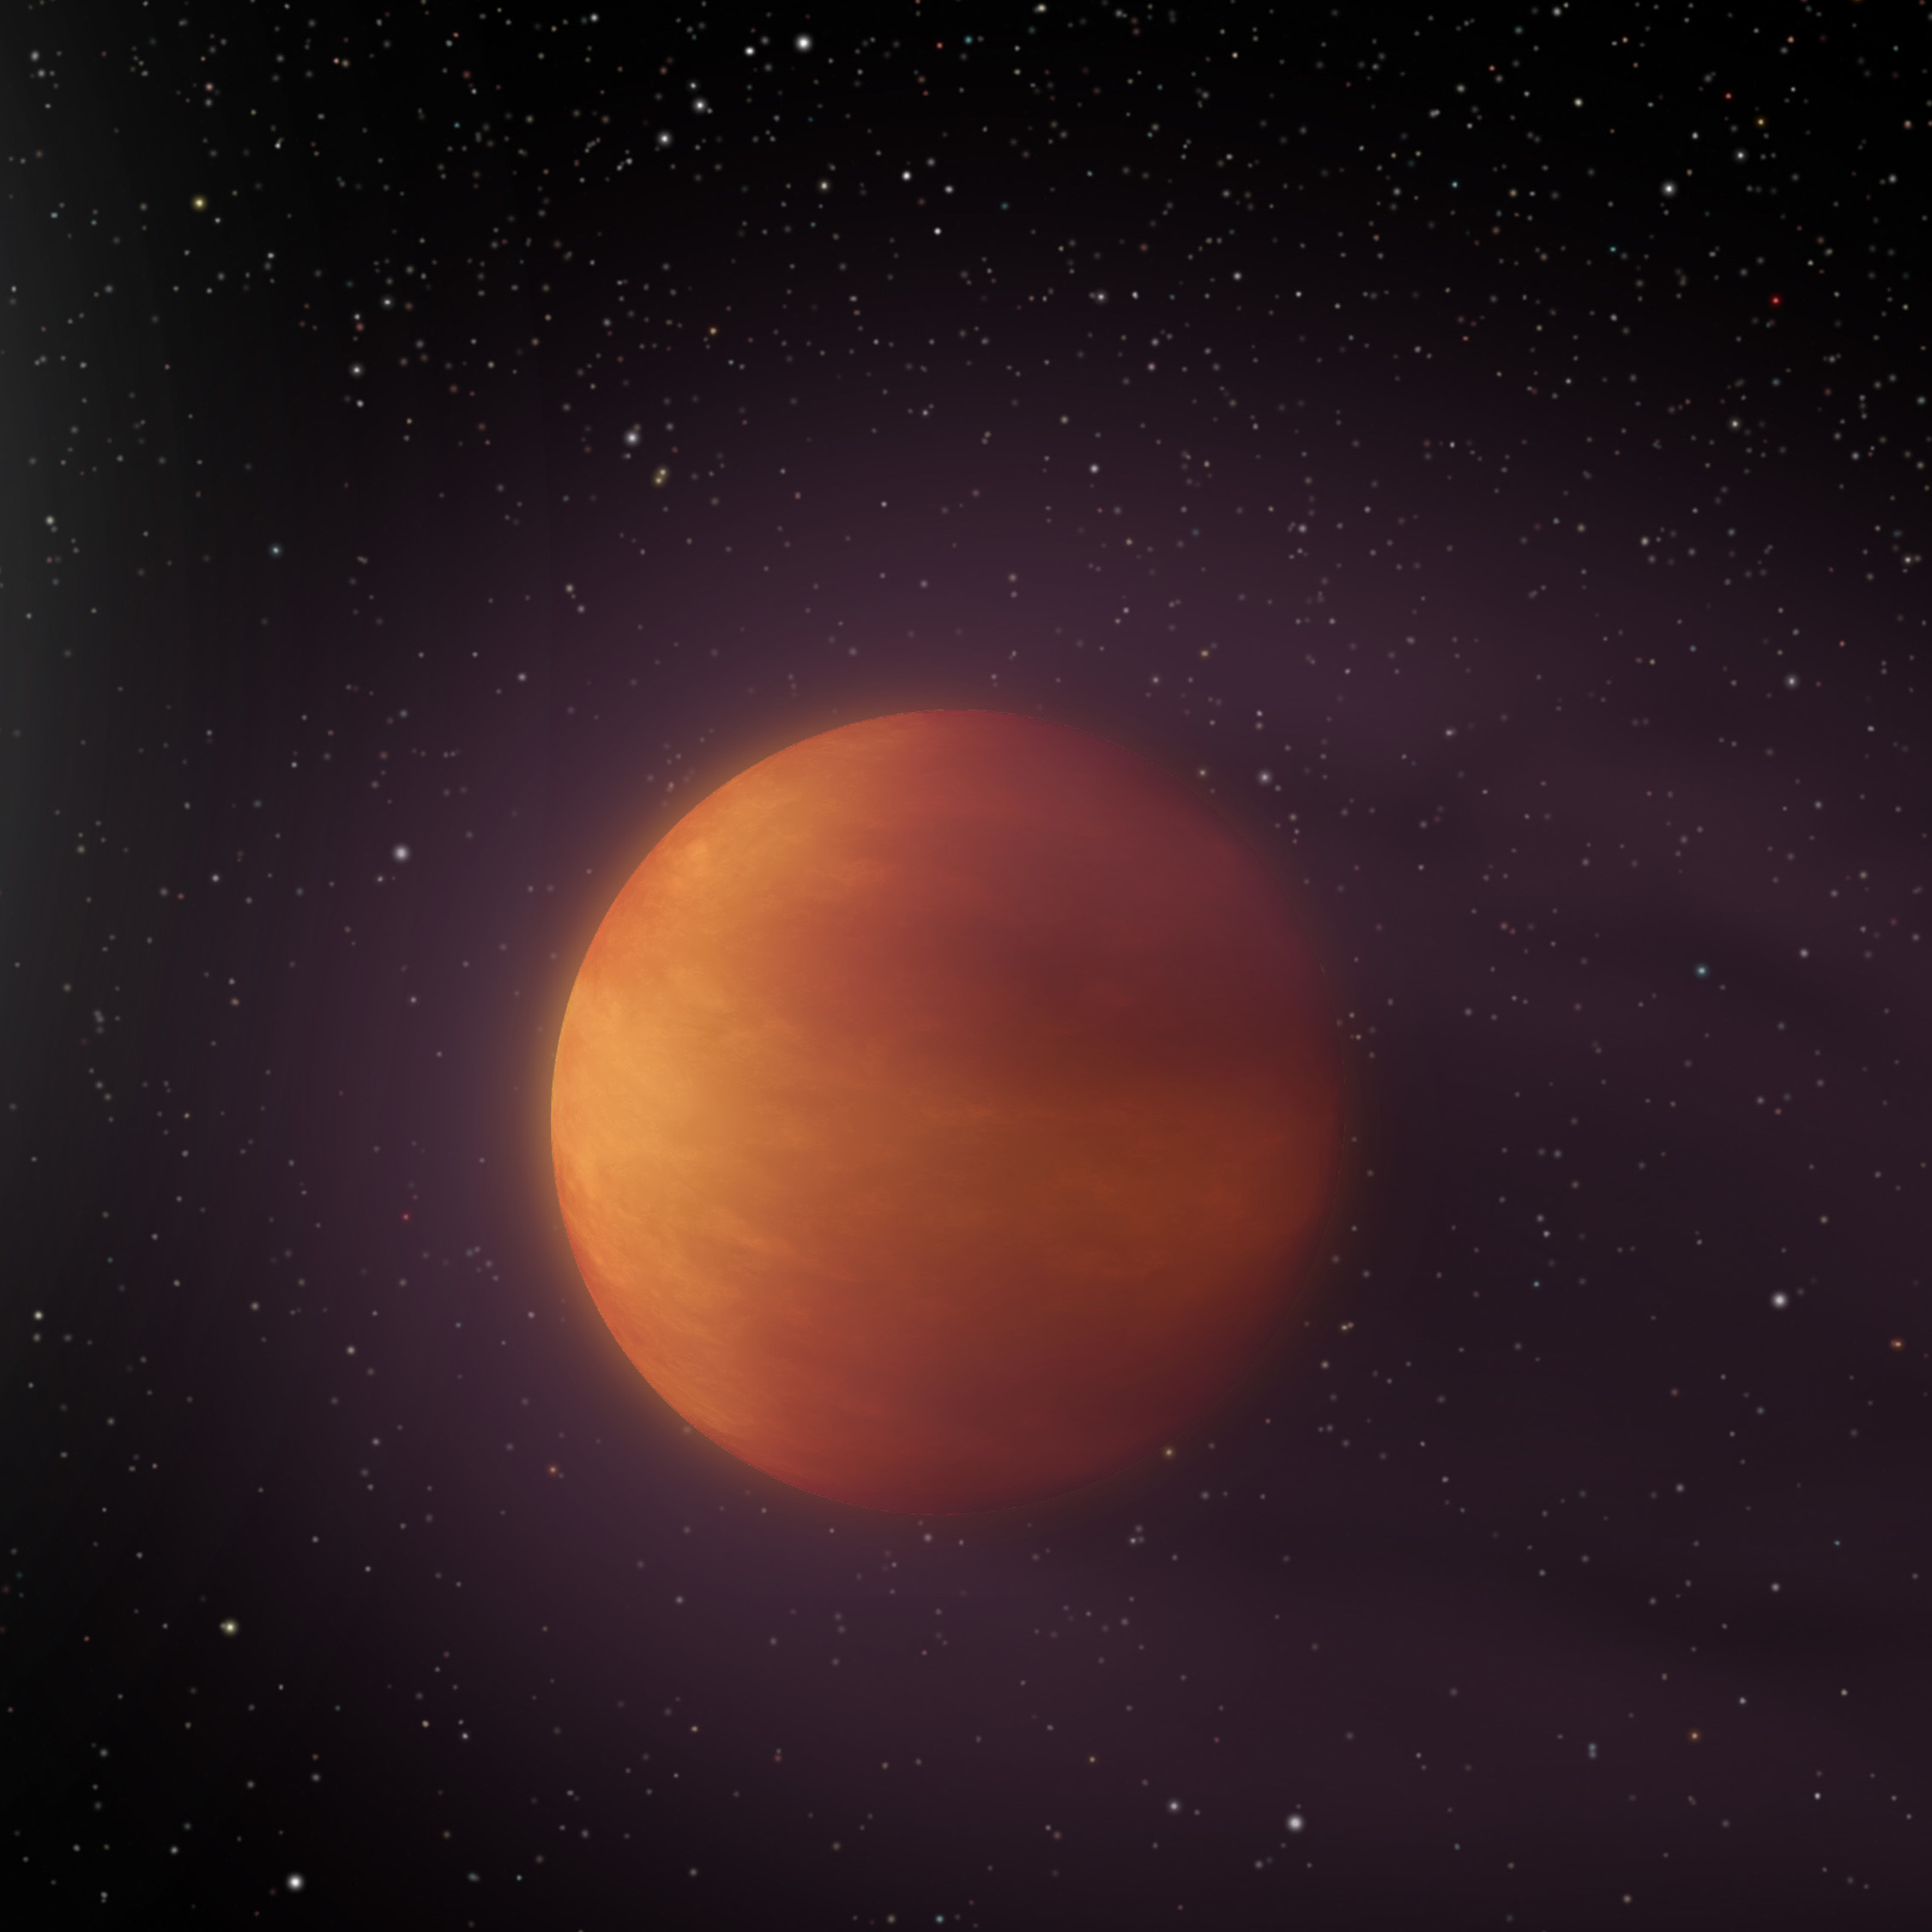 Hottest known planet in universe discovered